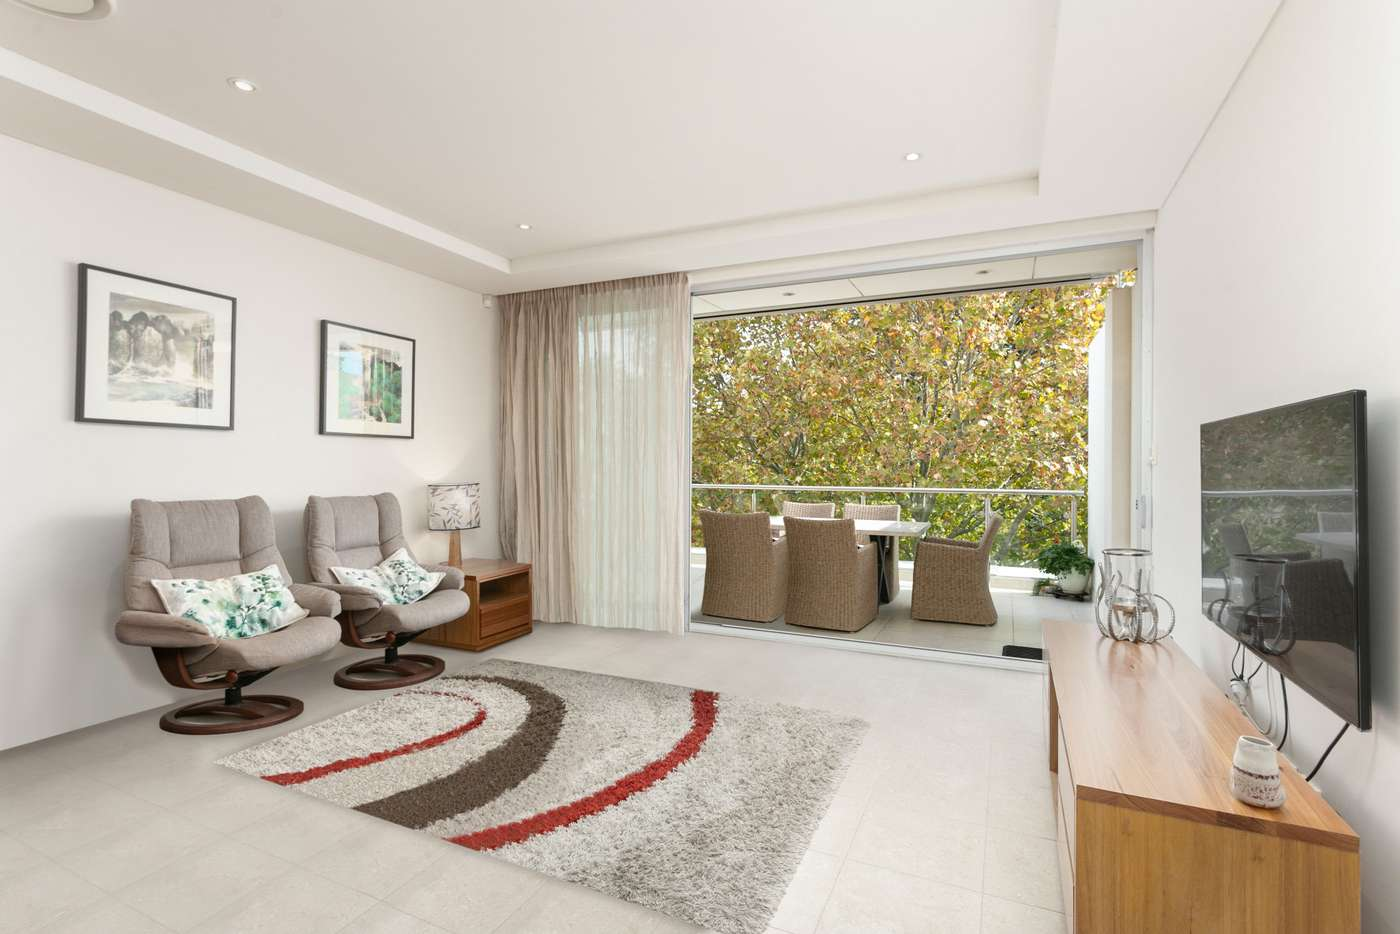 Main view of Homely apartment listing, 5/254 Rokeby Road, Subiaco WA 6008